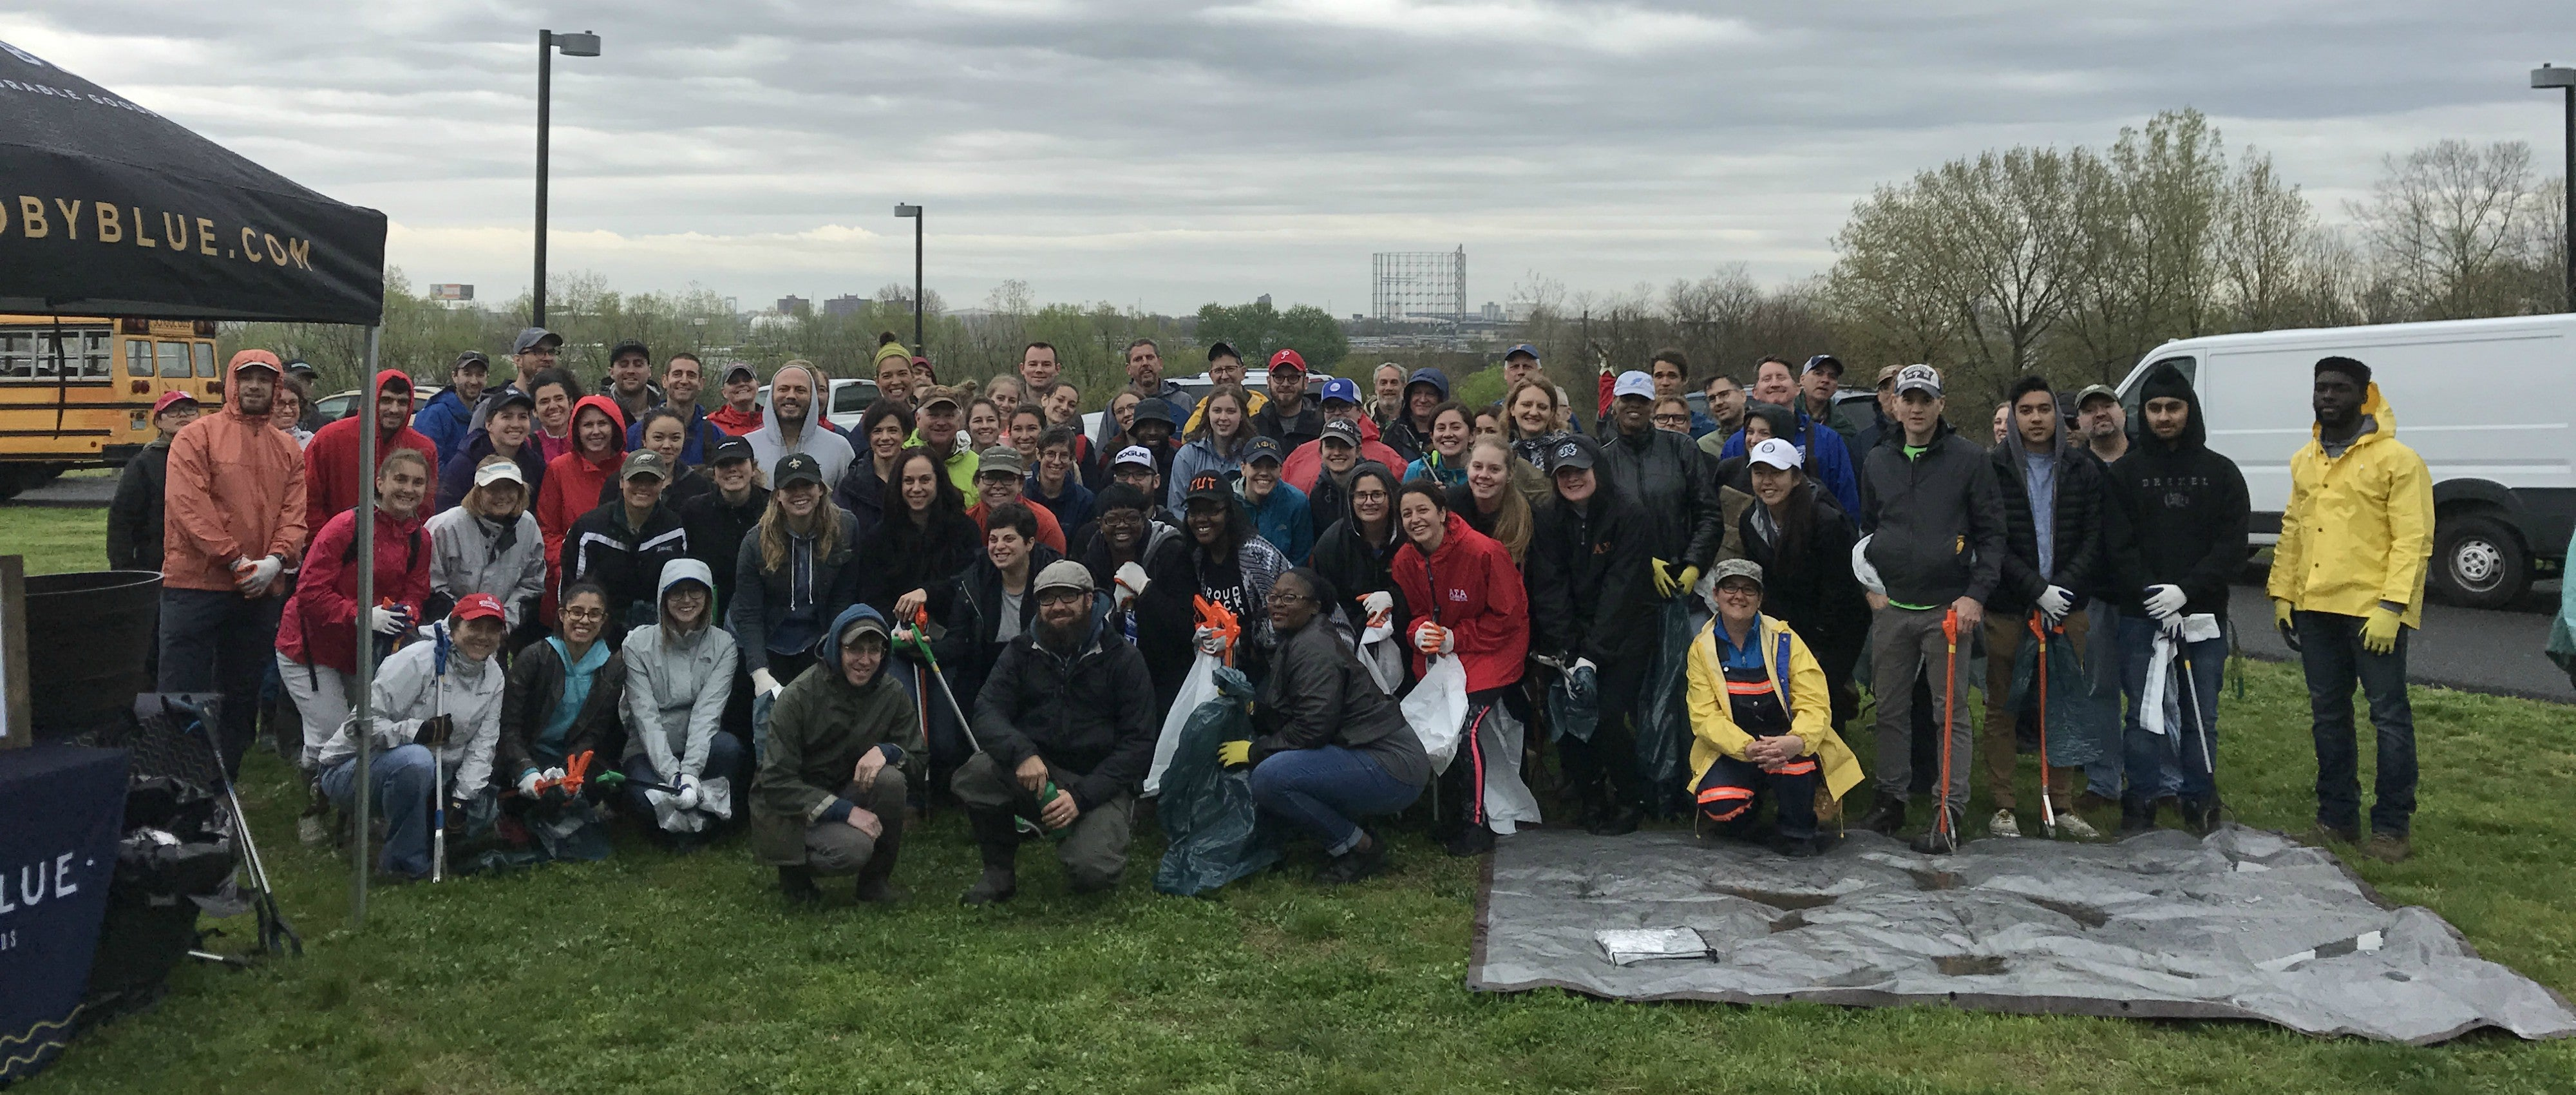 Schuylkill river cleanup